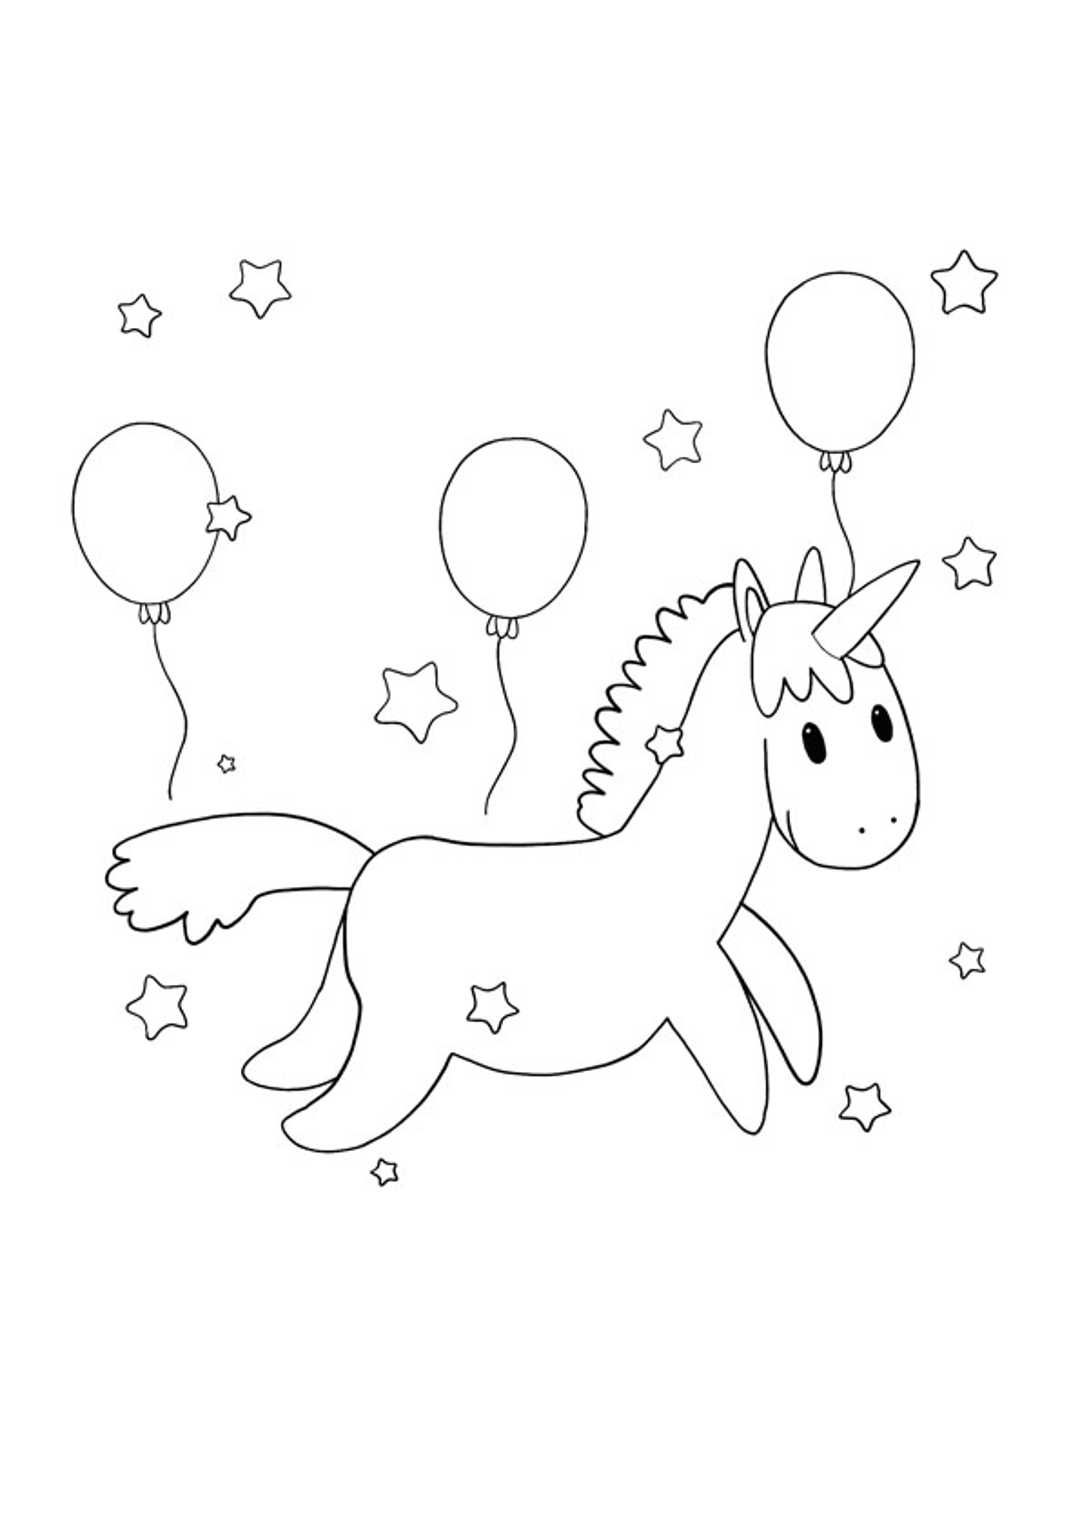 Unicorn Mermaid Coloring Pages In 2020 Unicorn Coloring Pages Mermaid Coloring Pages Mermaid Coloring